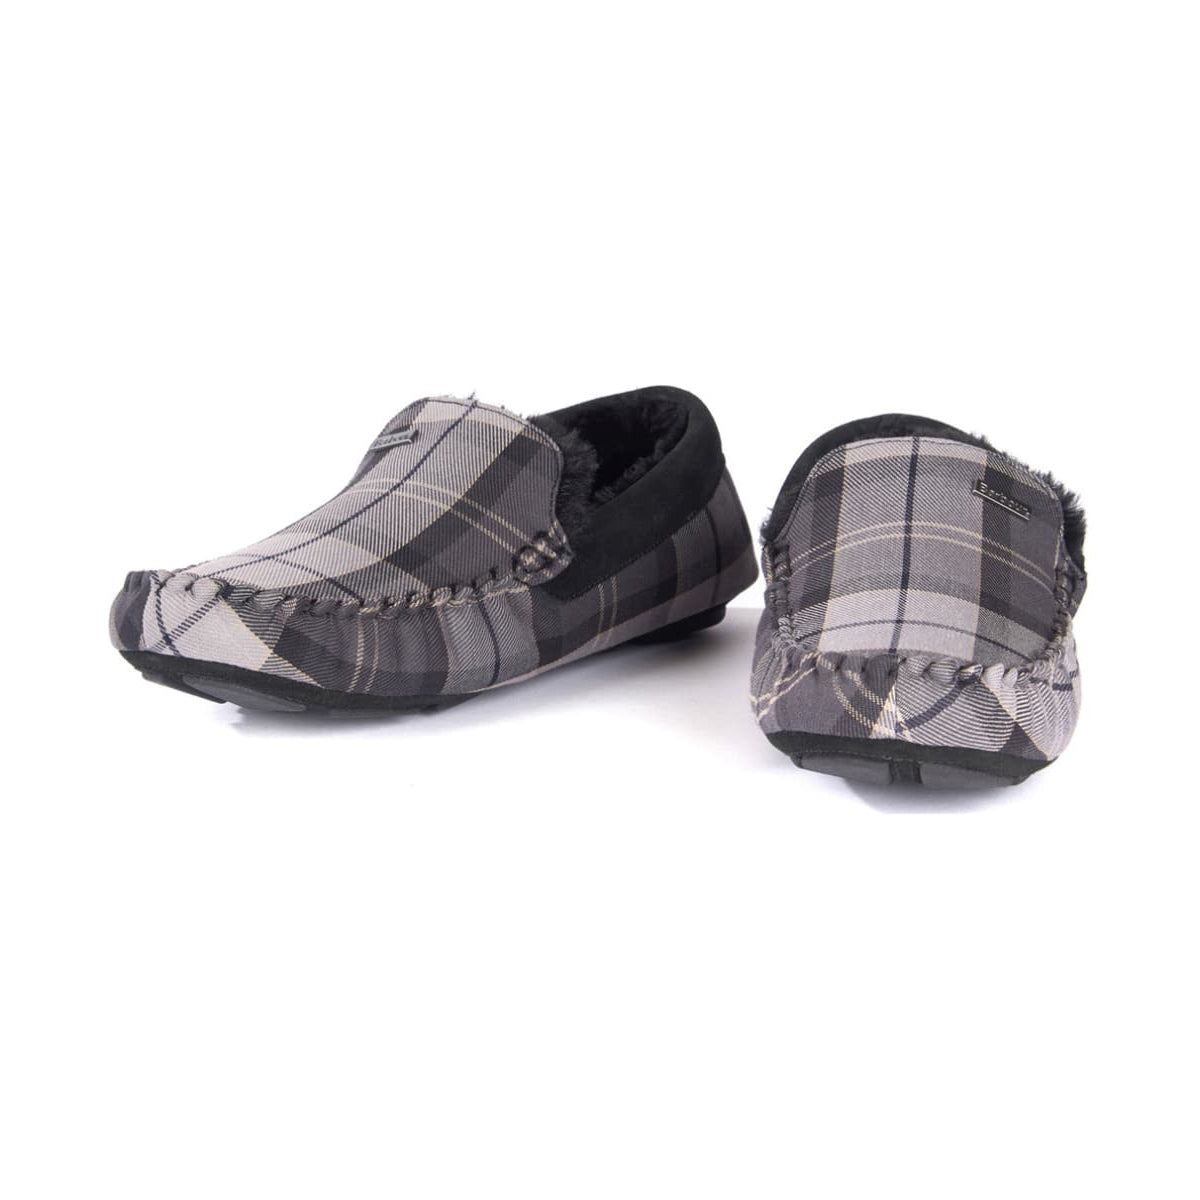 fd1921023145 Barbour Monty Moccasin Slippers Monochrome Tartan - Smart Ass Menswear